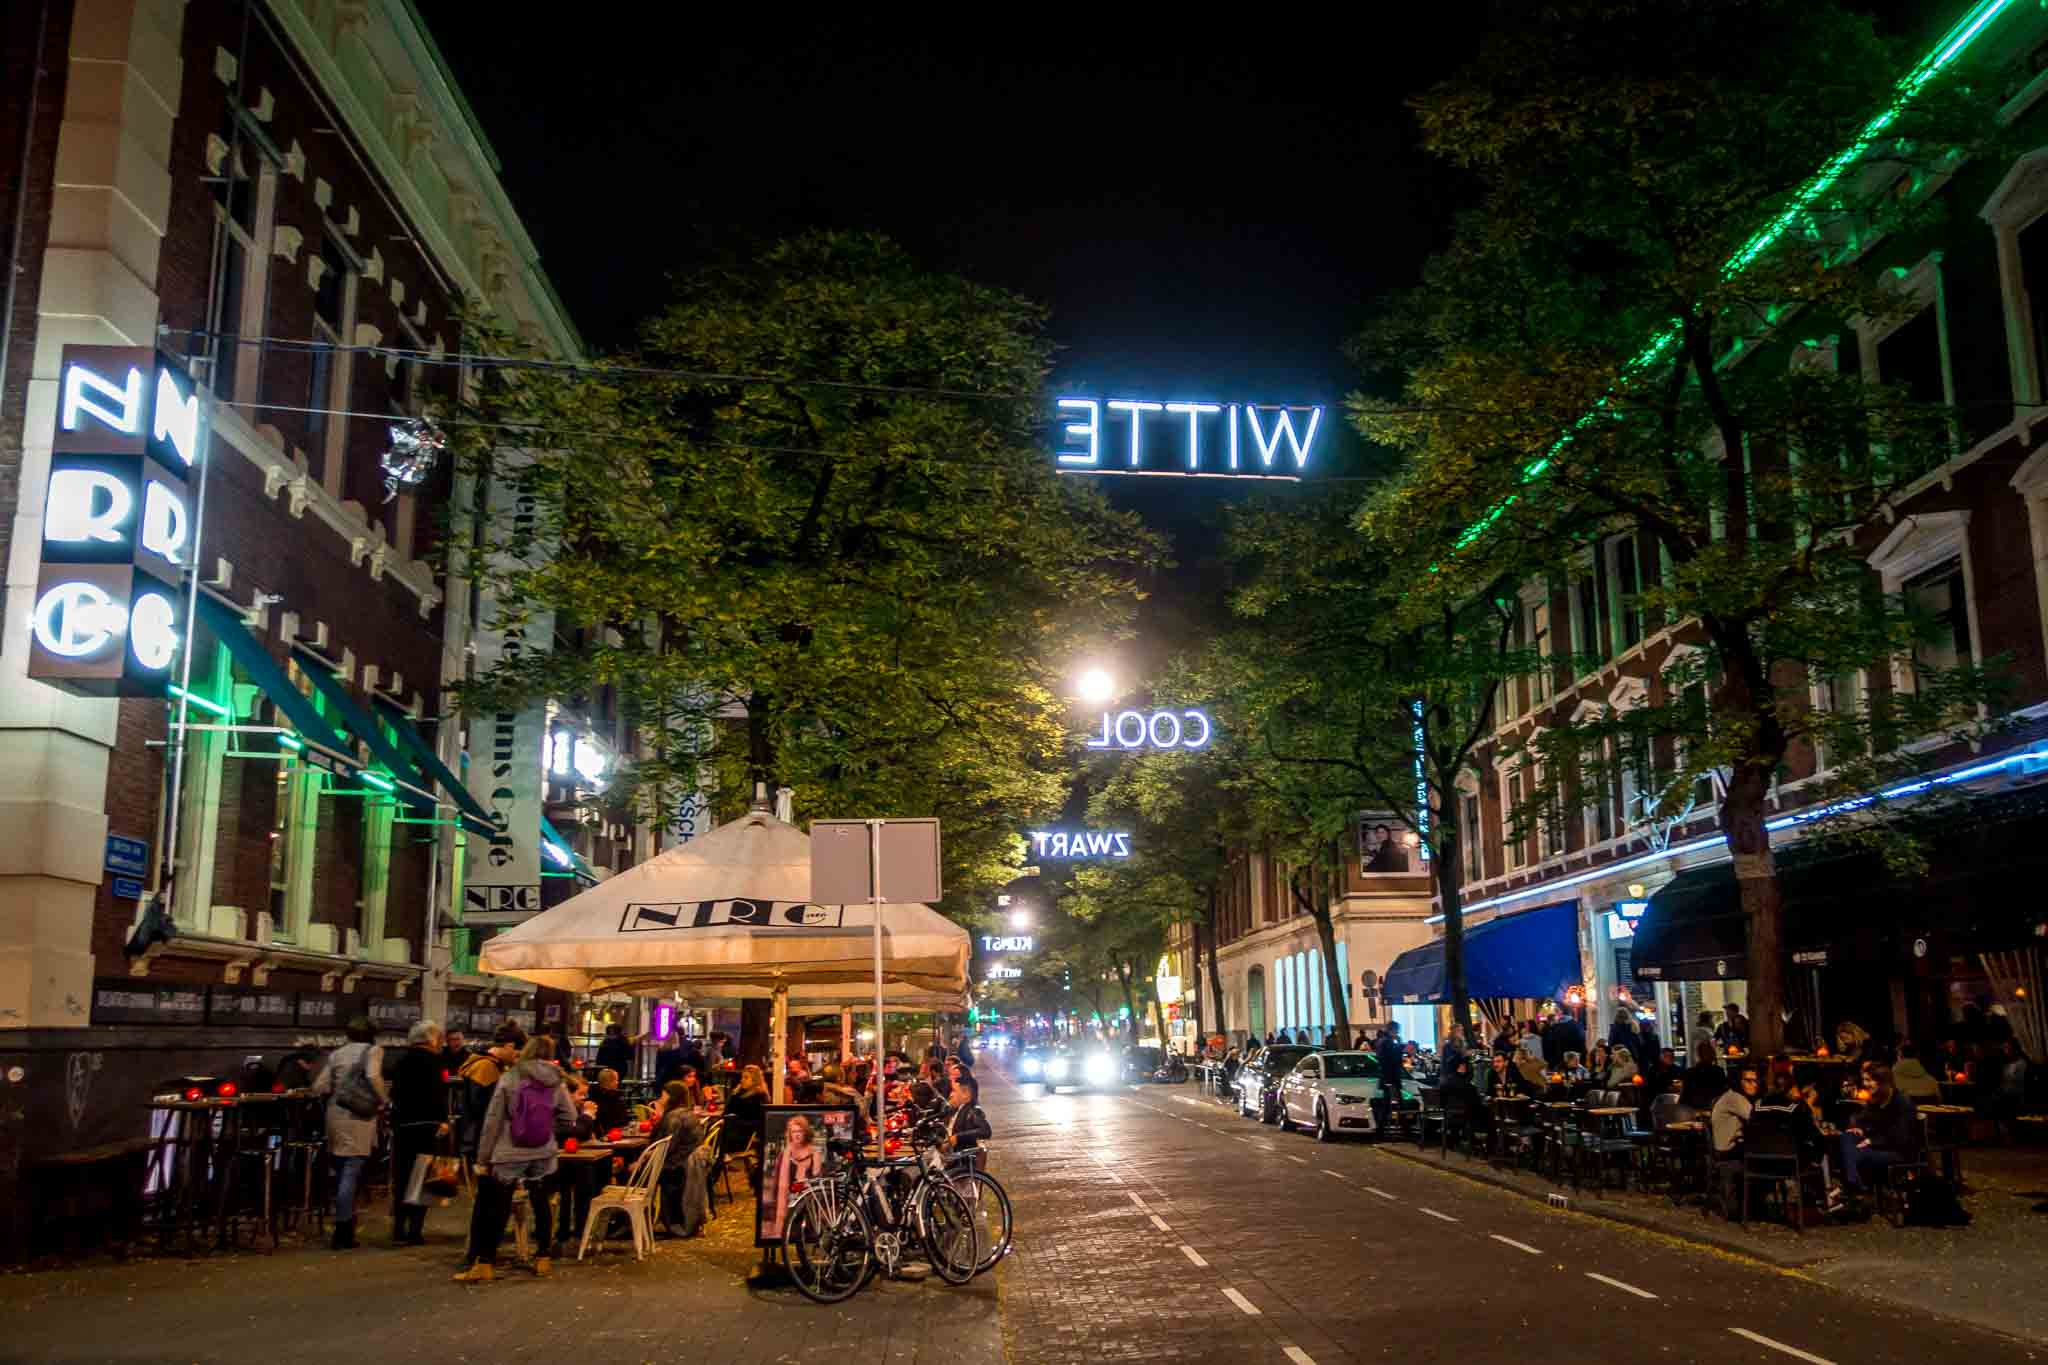 Rotterdam's colorful Witte de With Street with people at sidewalk cafes at night